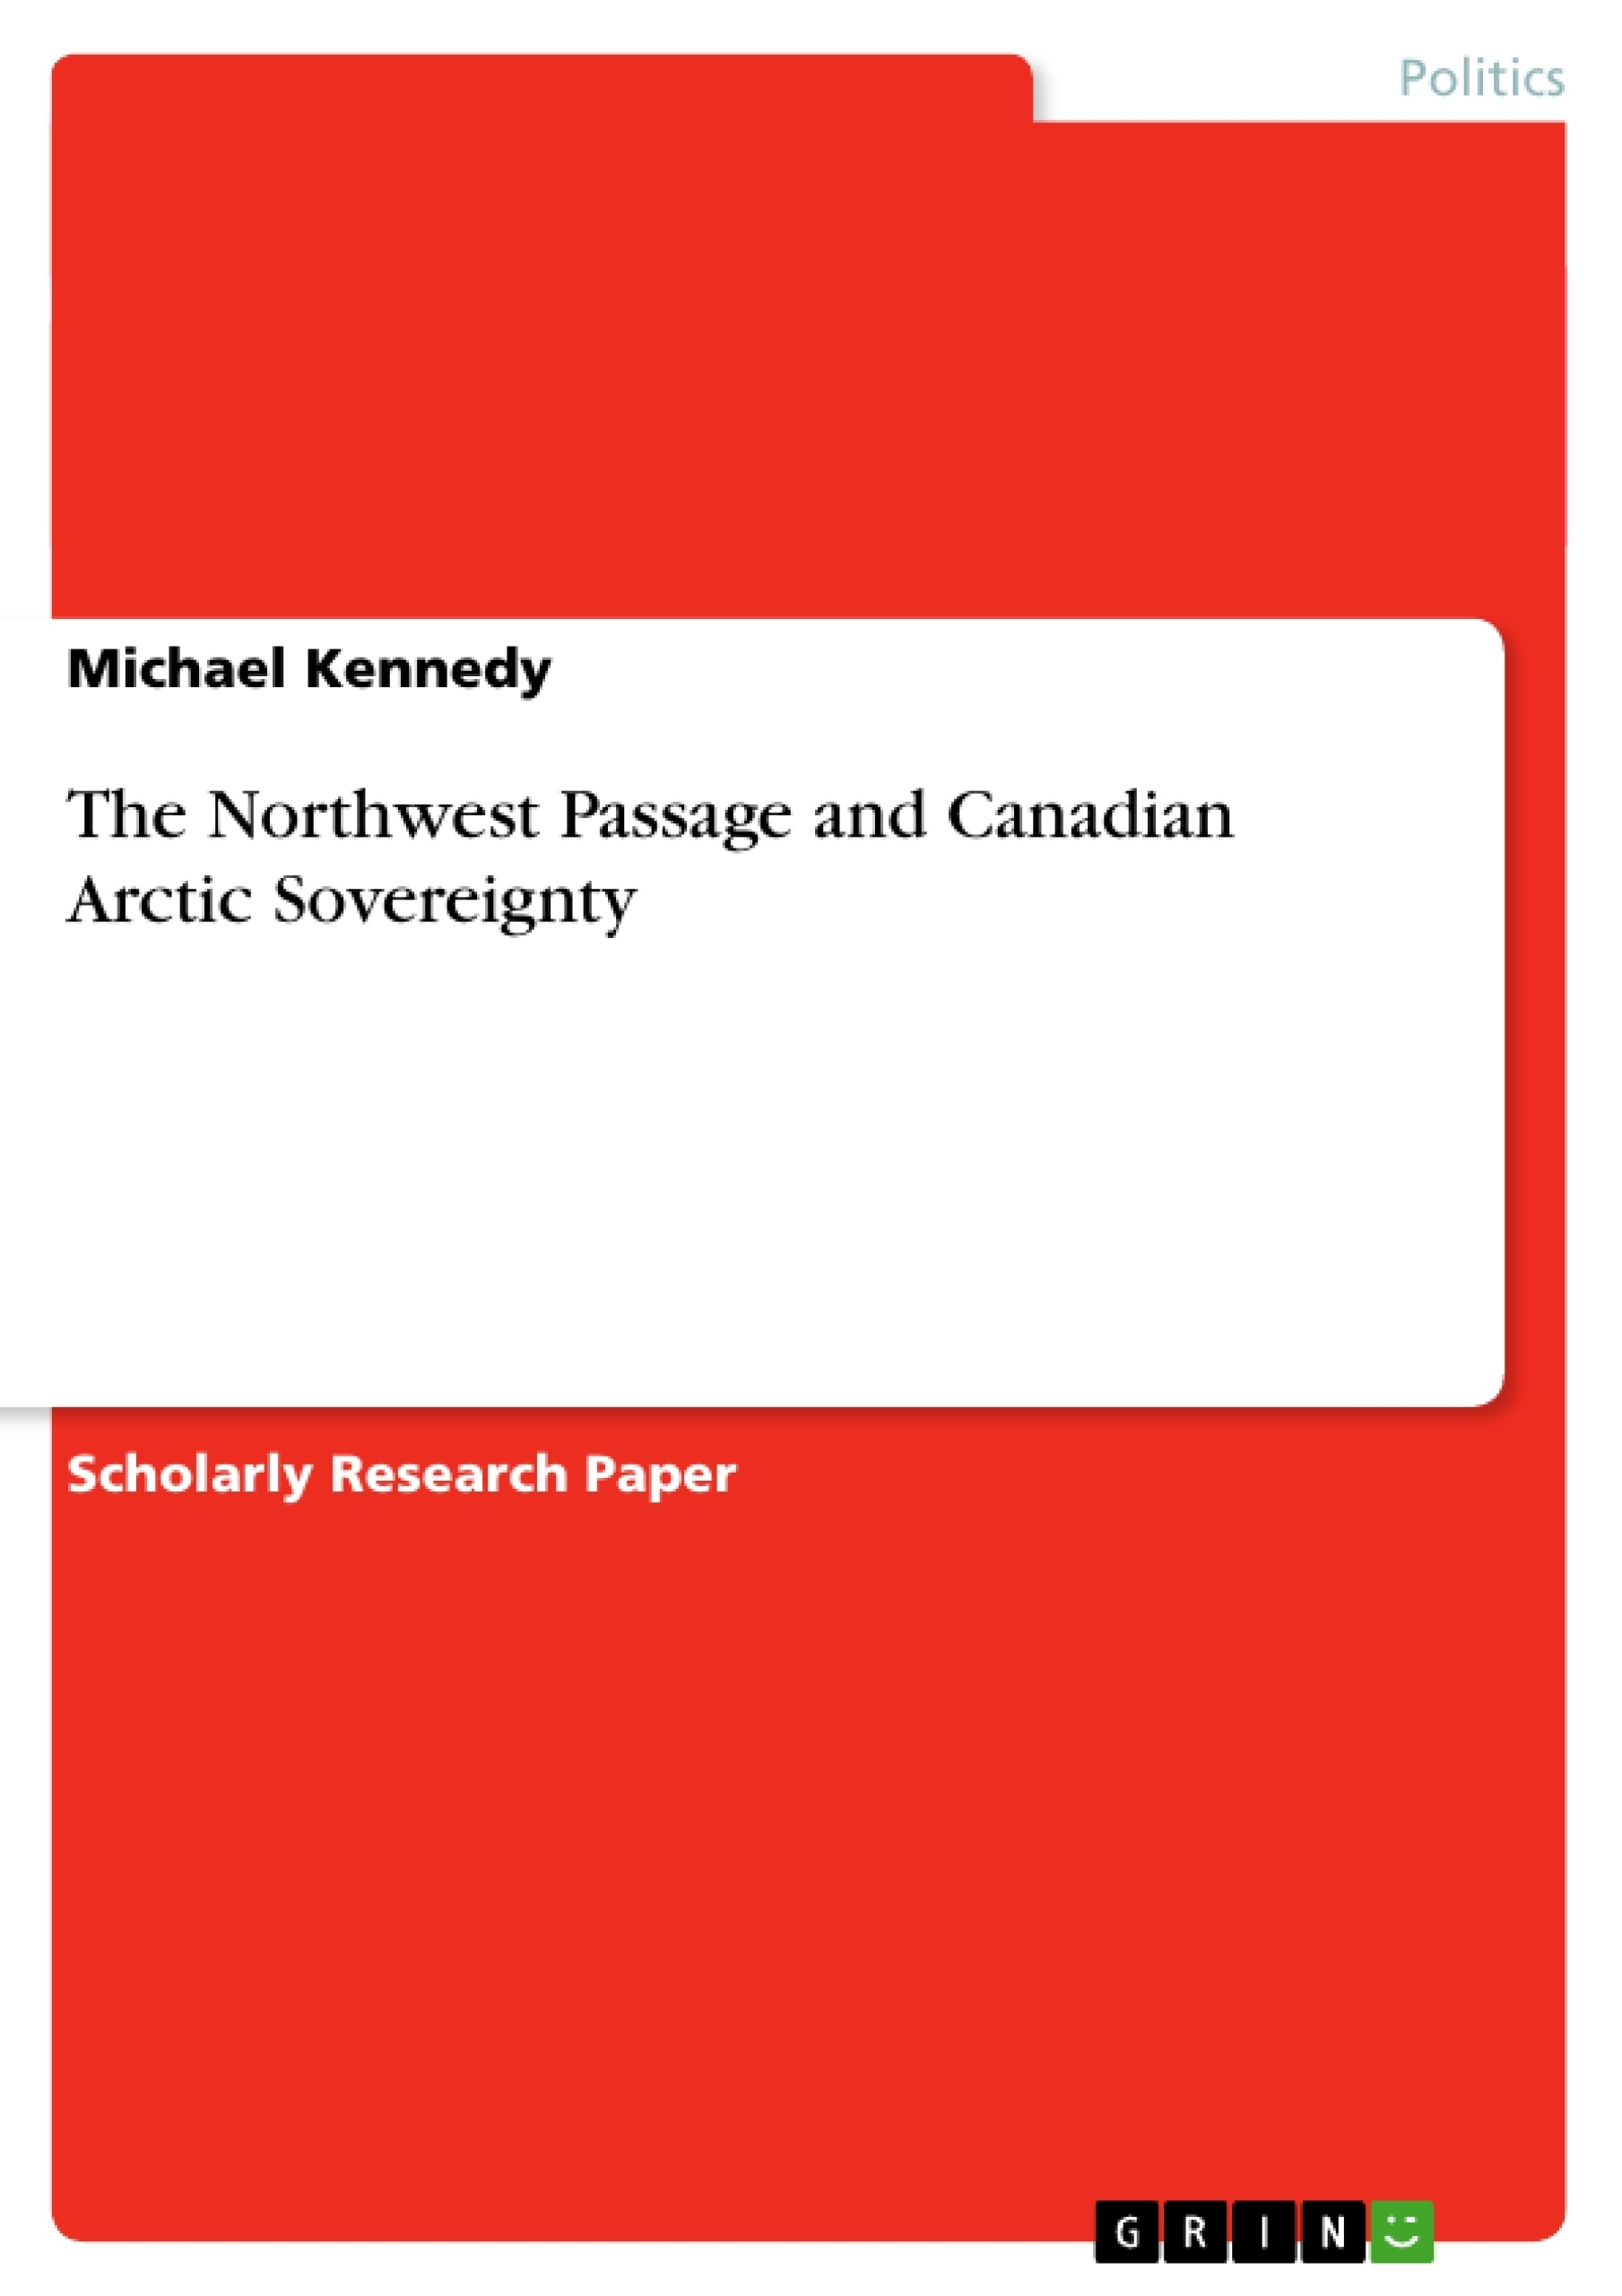 Canadian arctic sovereignty essay